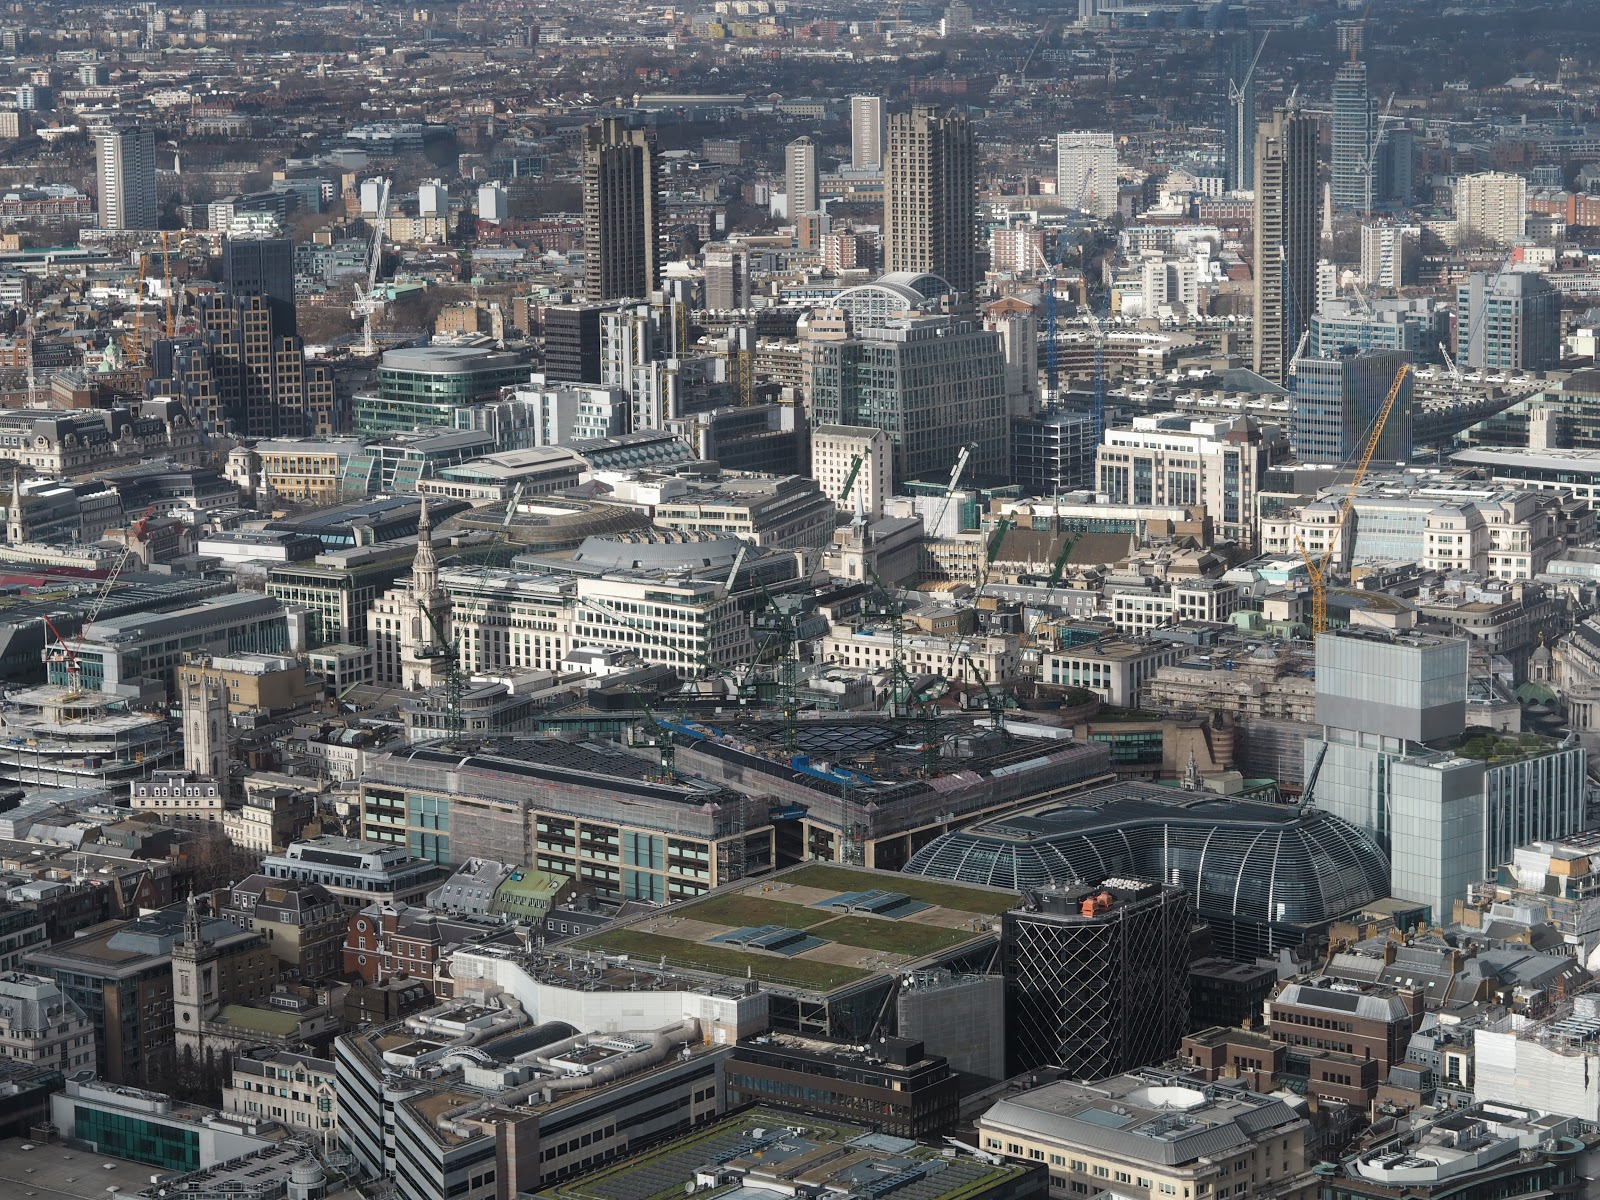 The City of London from The View from The Shard